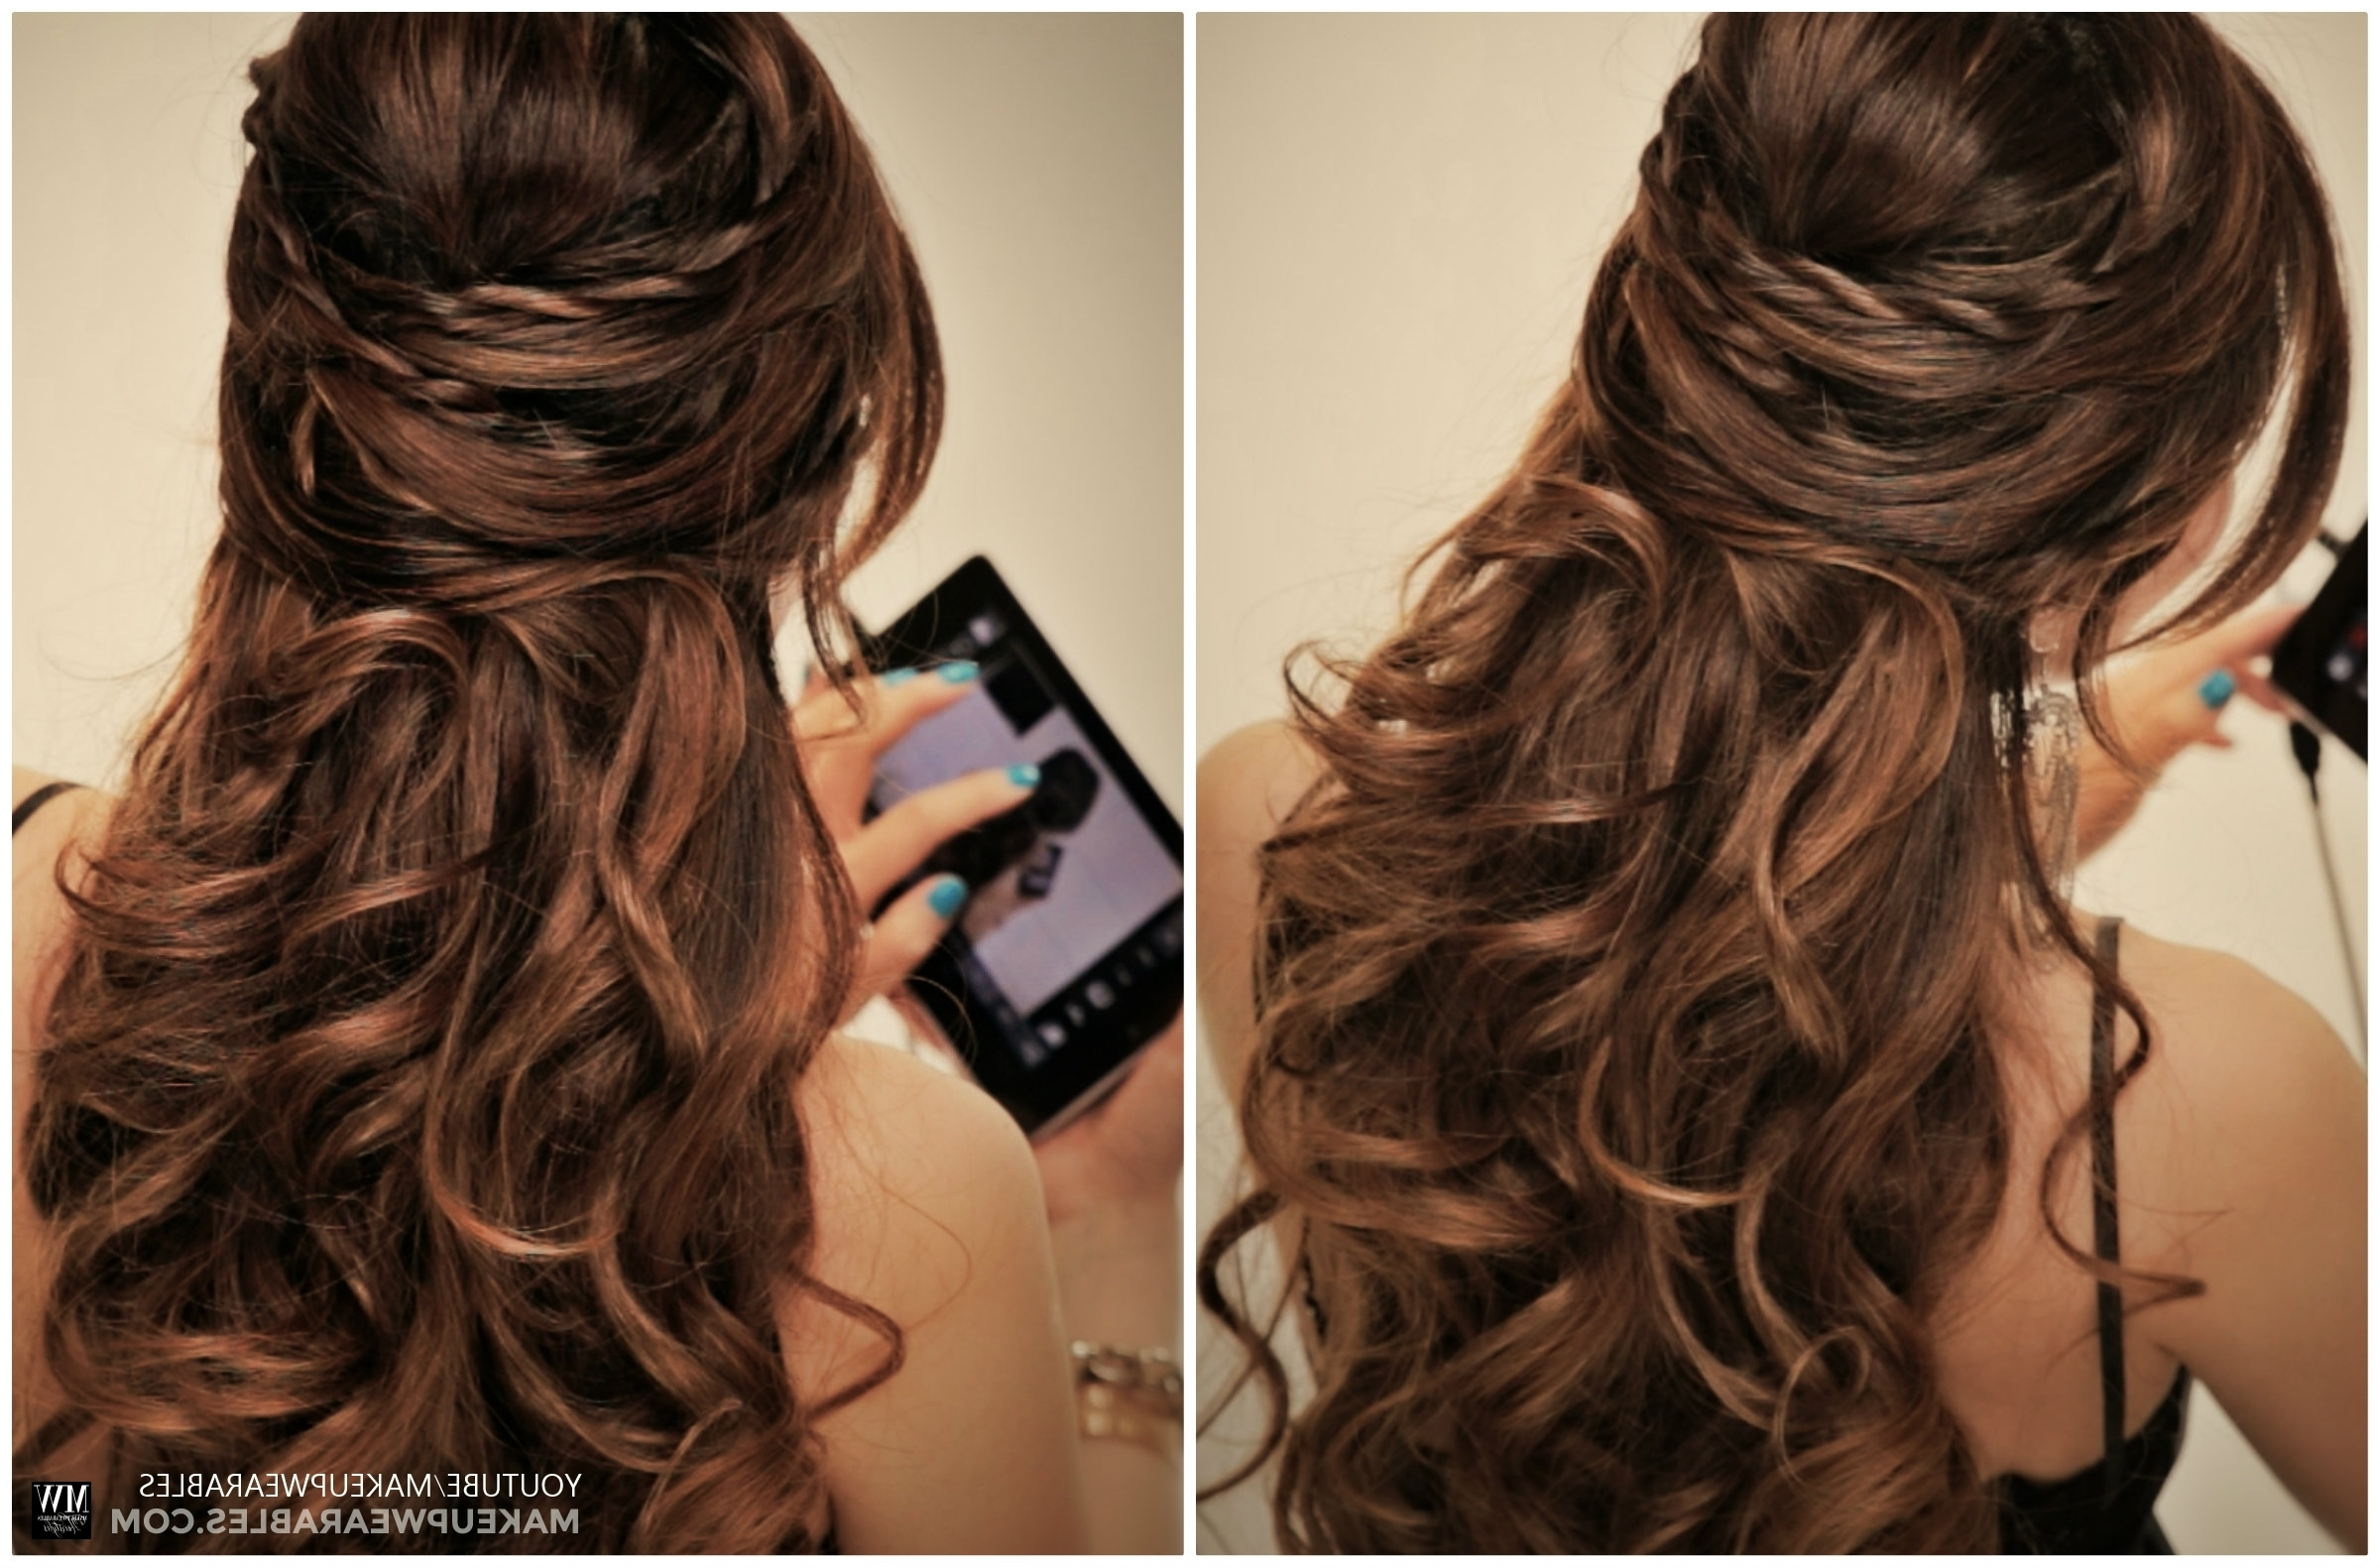 How To: 5 Amazingly Cute + Easy Hairstyles With A Simple Twist In Half Up Half Down Updo Hairstyles (View 11 of 15)